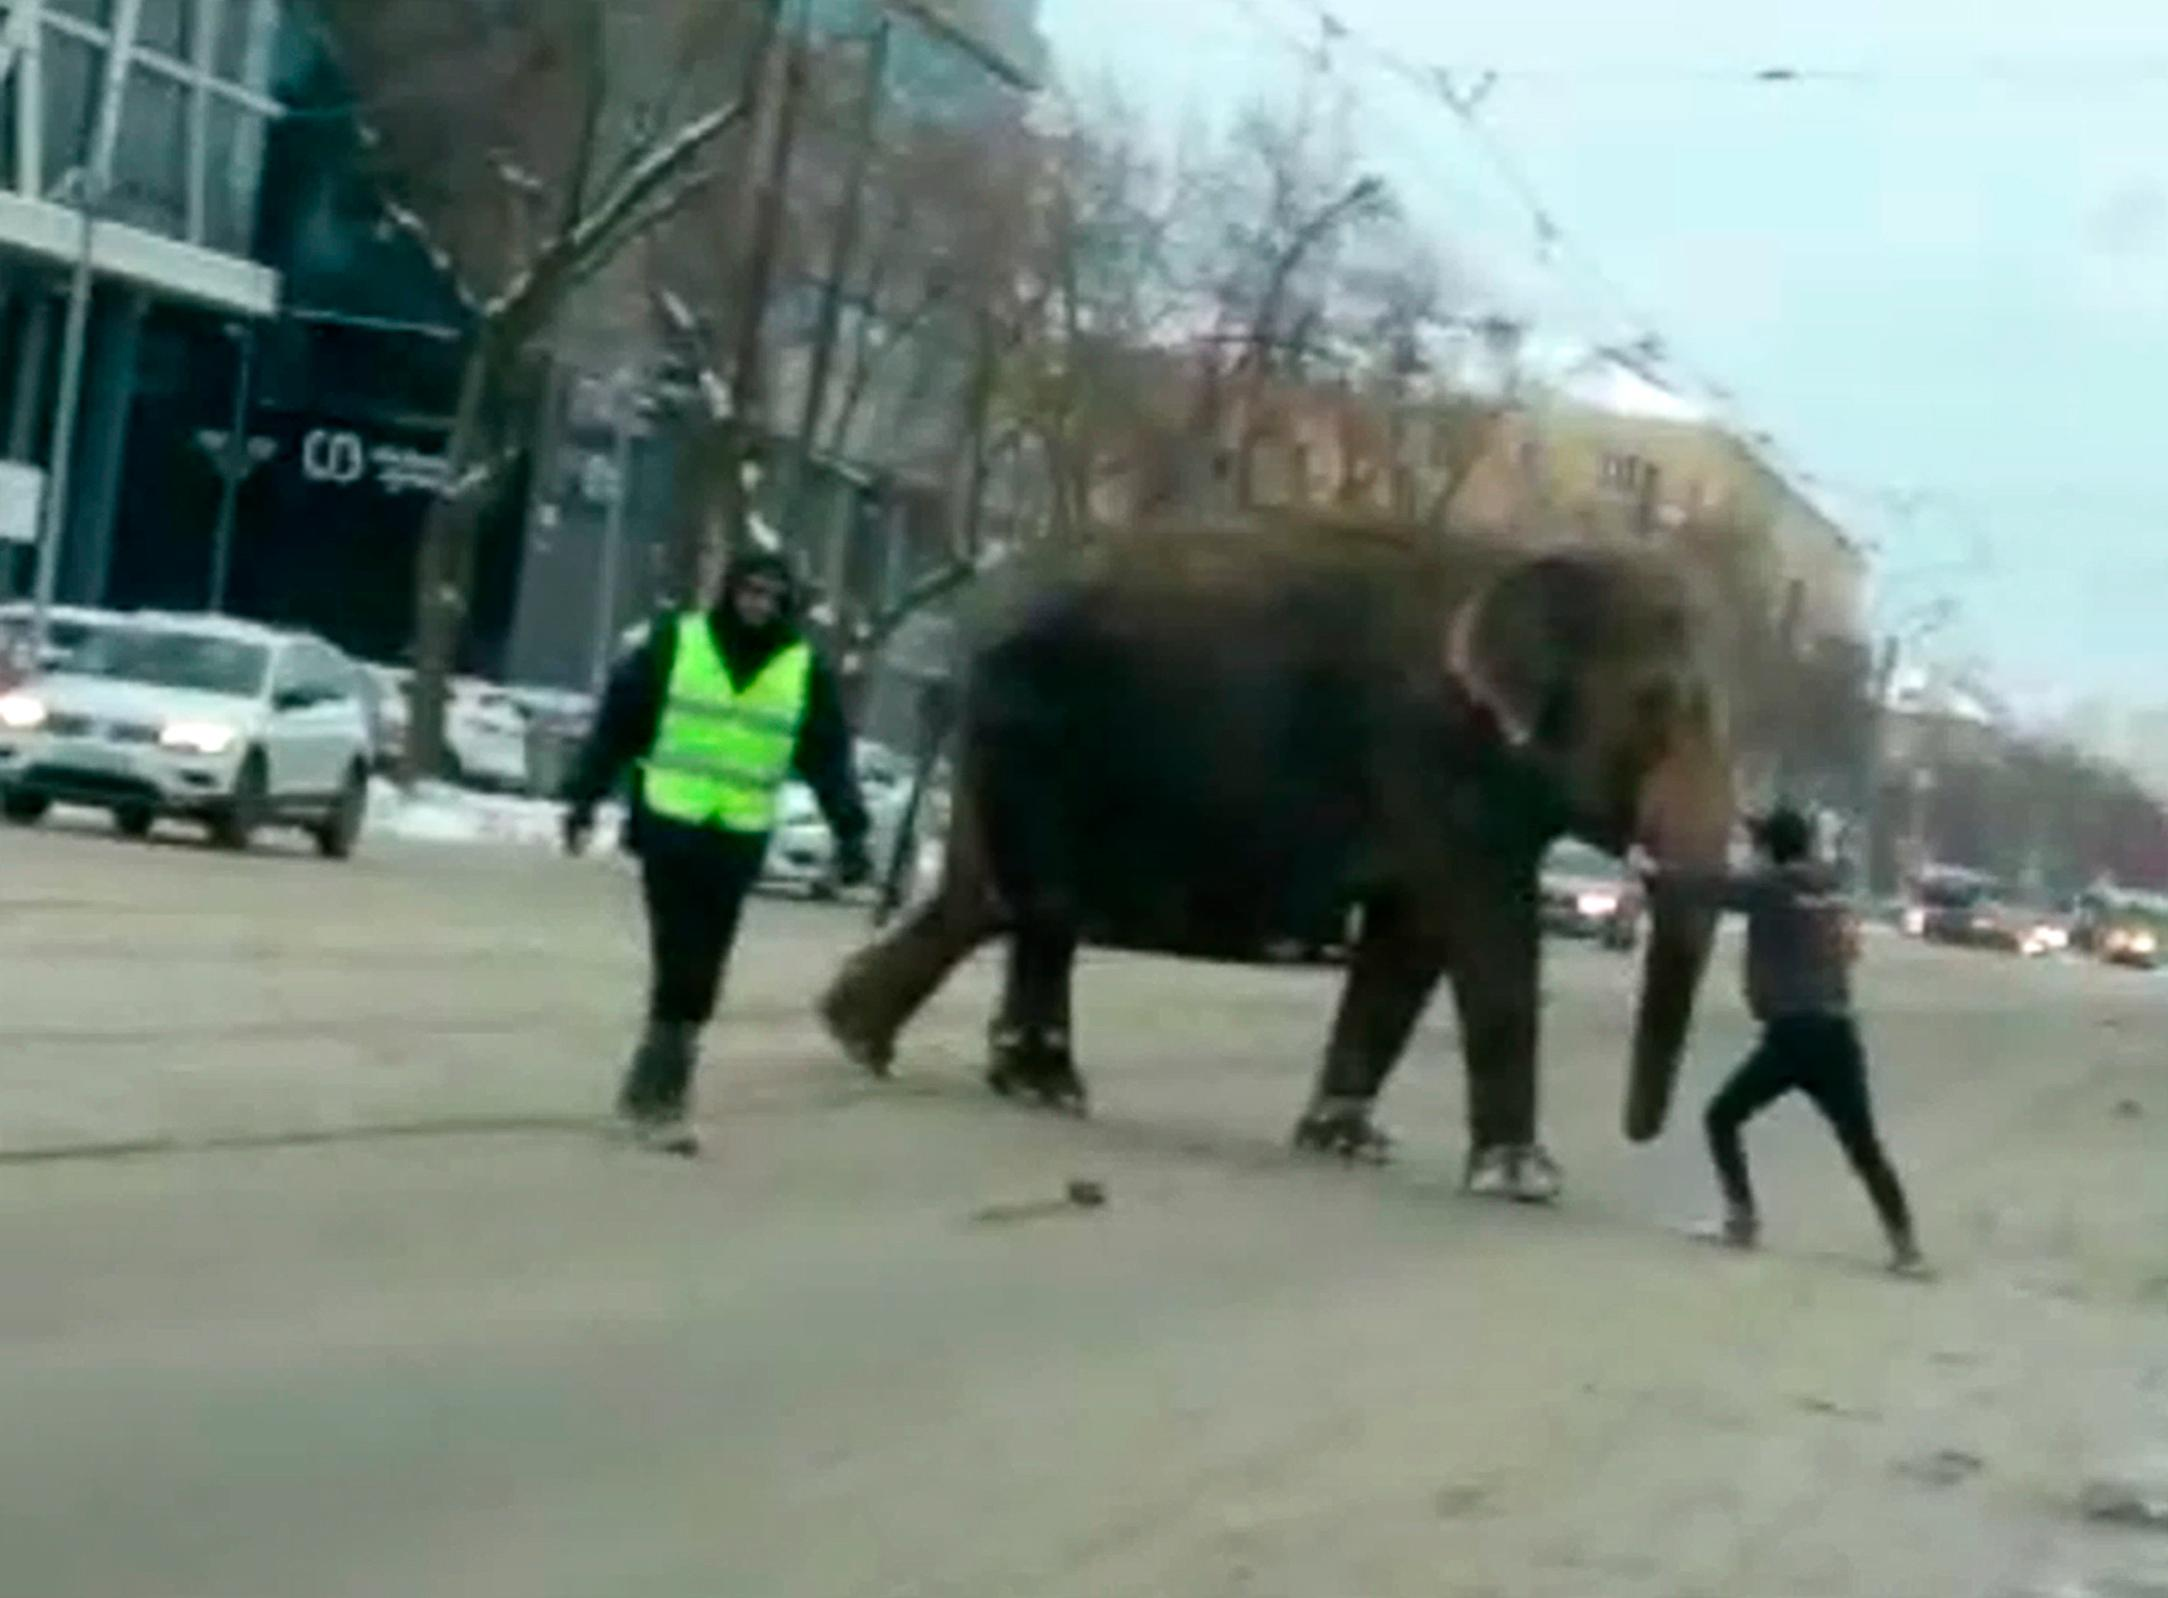 In this handout photo taken from a footage and released by Daniil Romanov, An elephant crosses the street in Yekaterinburg, Russia, Friday, Jan. 24, 2020. Two elephants escaped from a local circus while its troupe tried to load then into a truck to head to the next destination. (Daniil Romanov via AP)